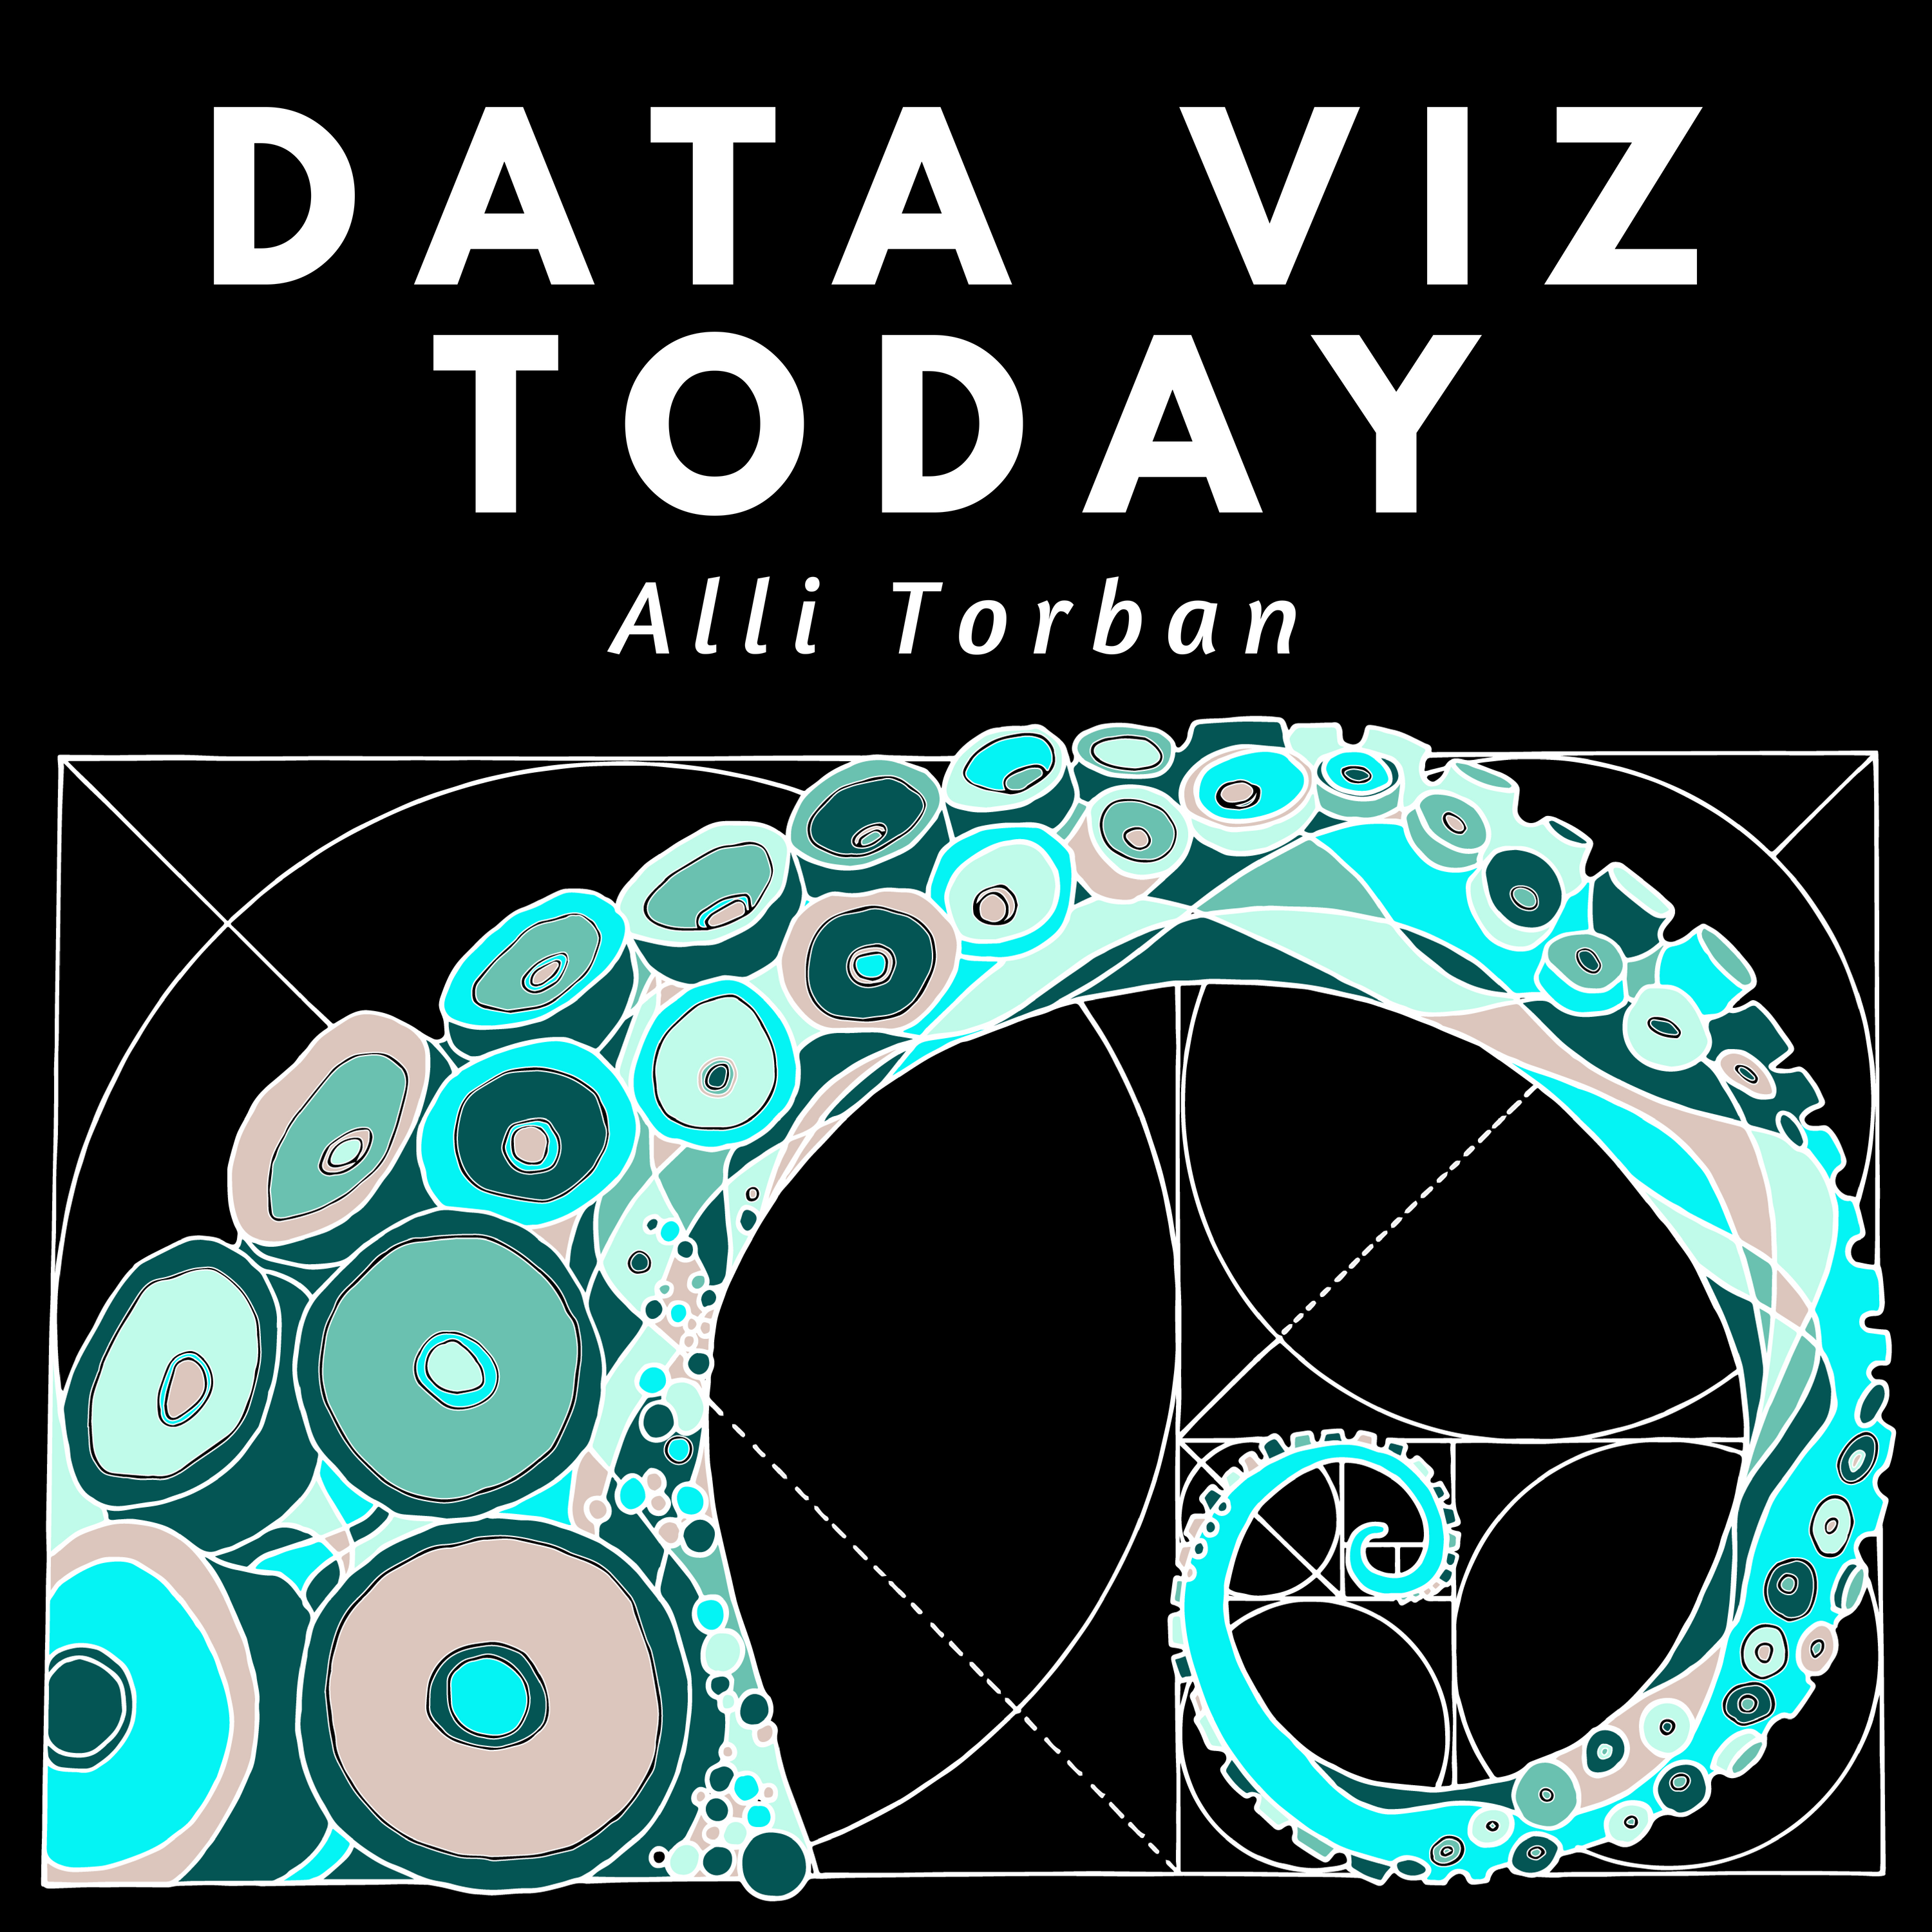 65: Why You Don't Need to be a Data Viz Unicorn to Have a Fulfilling Career— Featuring Amanda Makulec